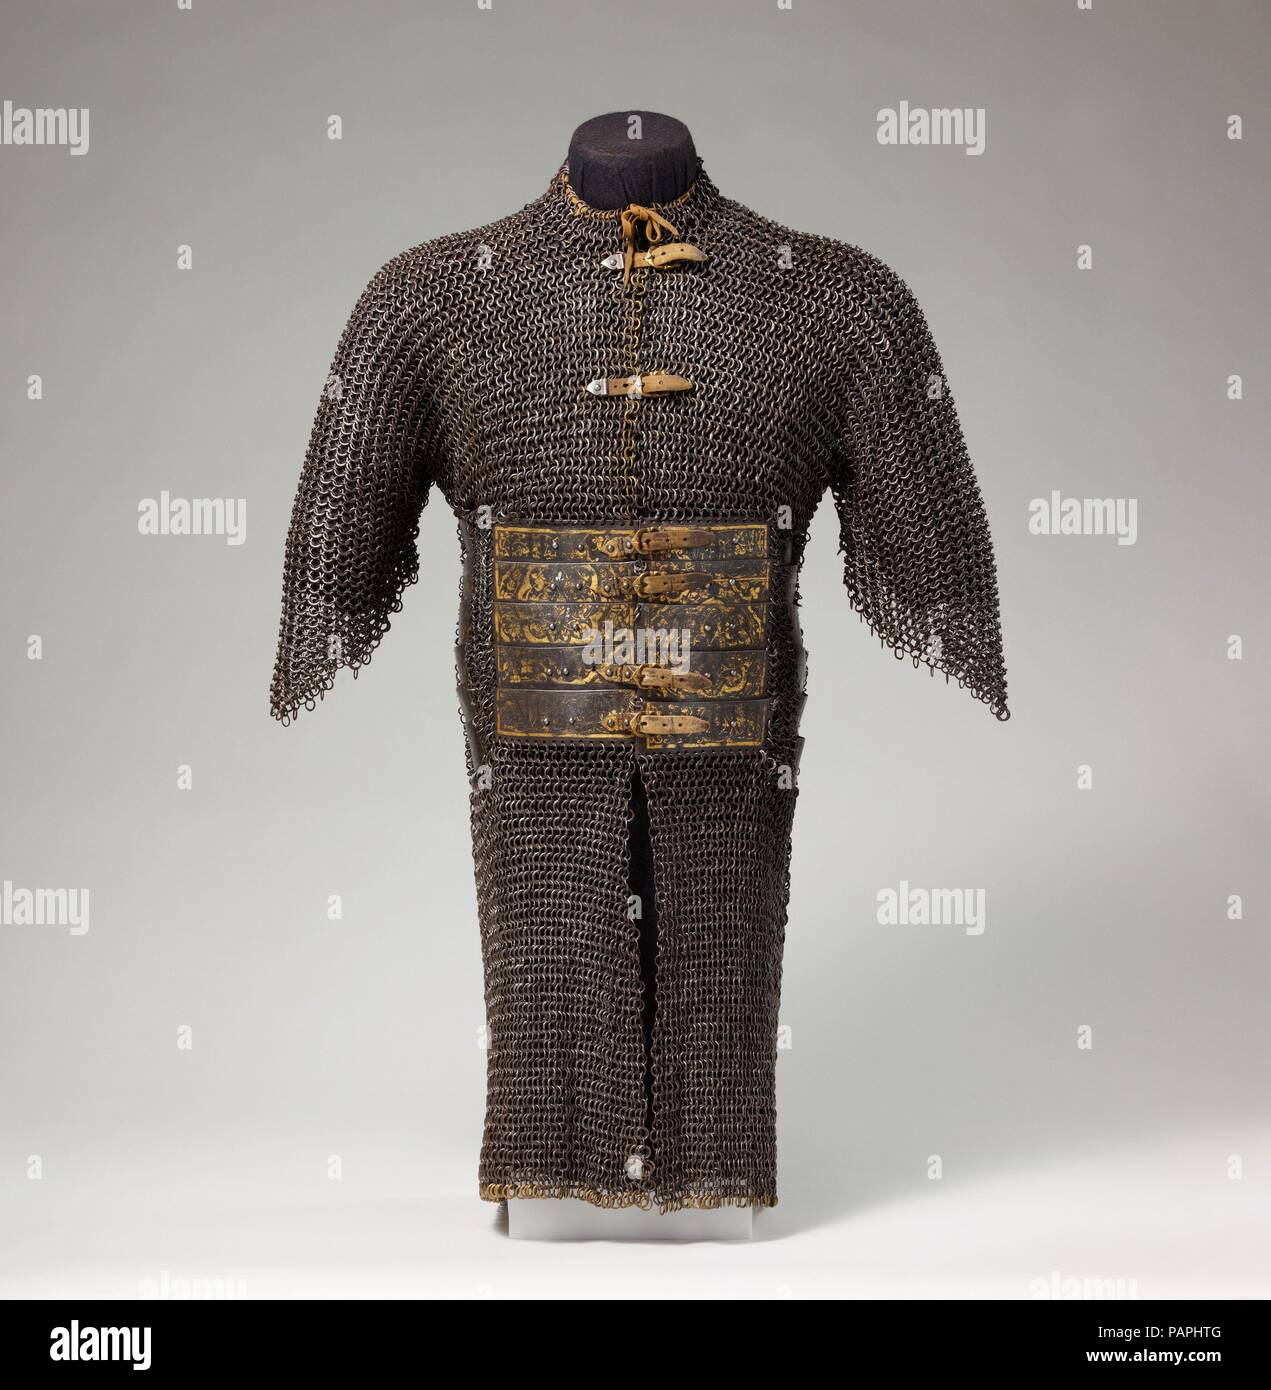 Shirt of Mail and Plate. Culture: Iranian or Turkish. Dimensions: H. 39 1/4 in. (99.7 cm); W. at shoulders 19 in. (48.26 cm); L. of metal plate at waist 8 1/2 in. (21.59 cm); W. of metal plate at waist 10 1/2 in. (26.67 cm); Wt. 25 lb. 10 oz. (11.61 kg). Date: 15th-16th century.  Acording to a Venetian ambassador writing in about 1478, the Ak-Koyunlu (White Sheep Turkoman) wore armor of 'iron in little squares and wrought with gold and silver tacked together with small mail.' Armor of this type seems to have been used throughout eastern Anatolia, Persia, and the Caucasus. This example is inscr - Stock Image